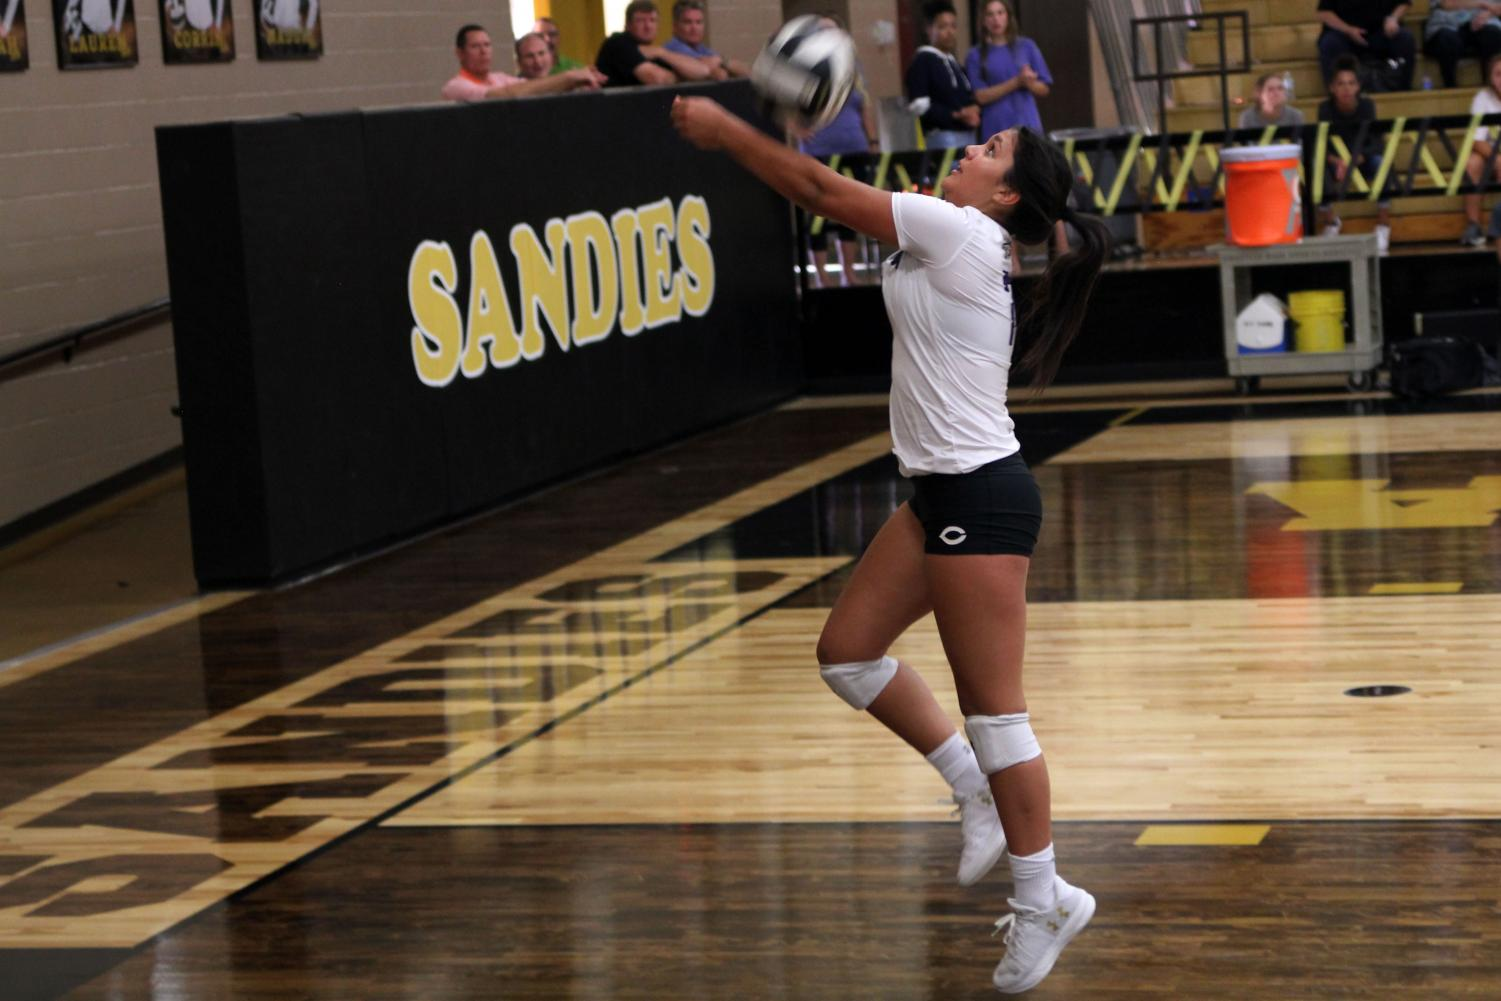 Junior Bryli Contreras returns the volleyball in the varsity team's game against the Amarillo Sandies.